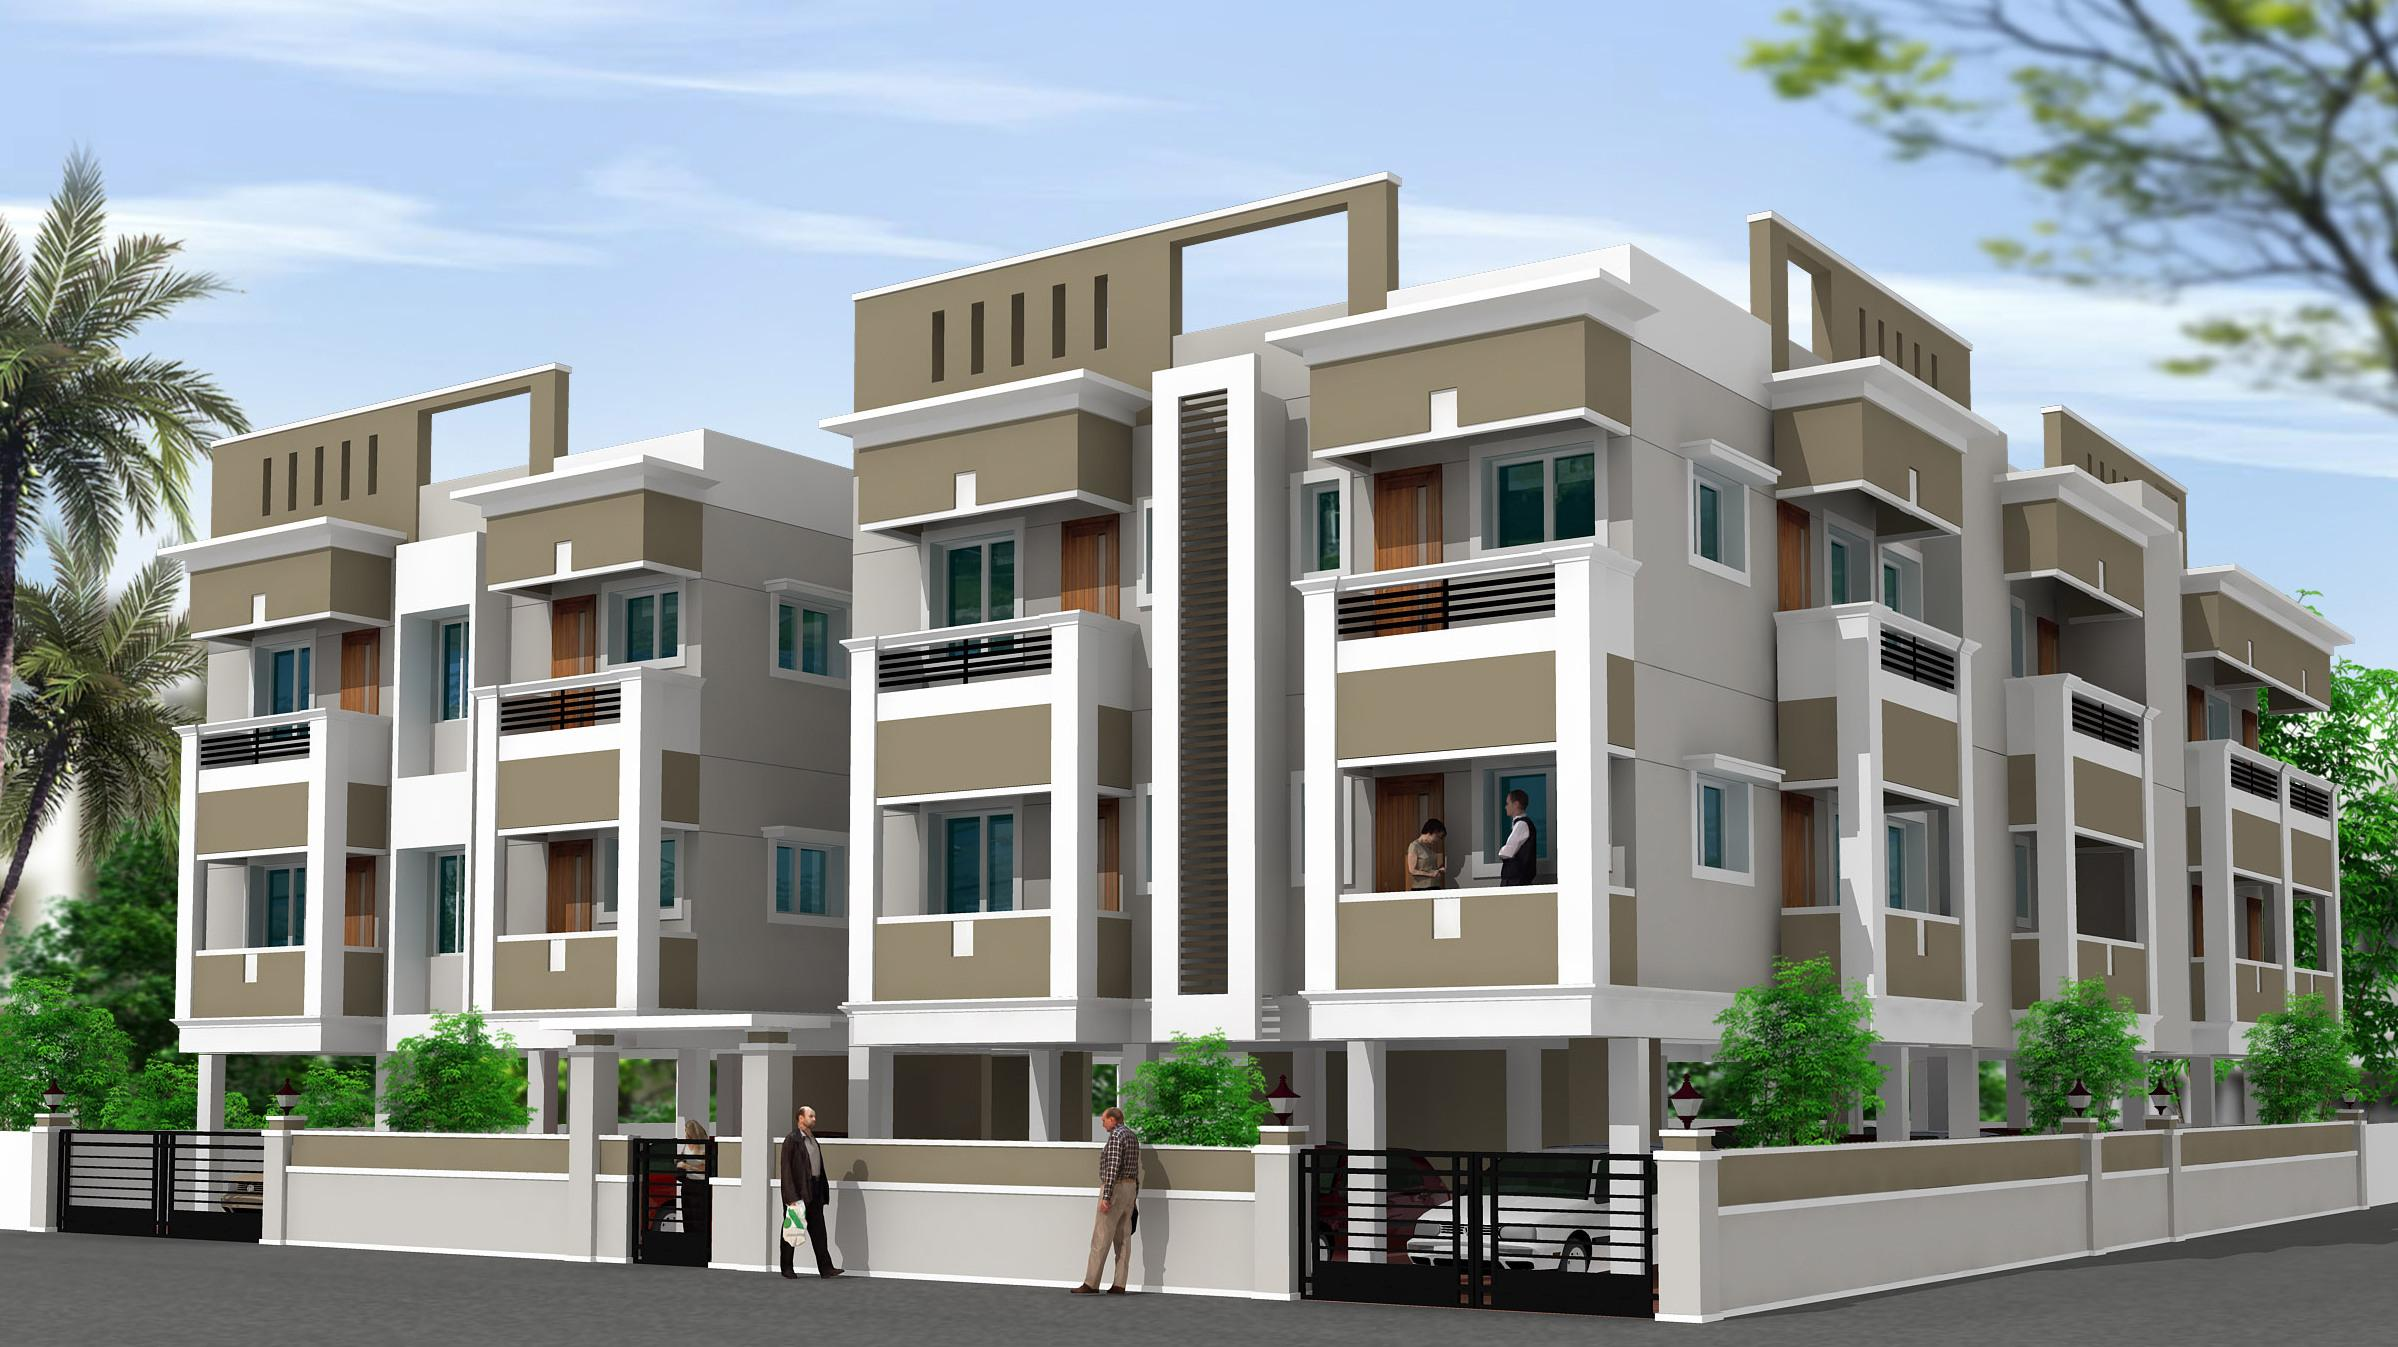 residential building elevation design with detailing